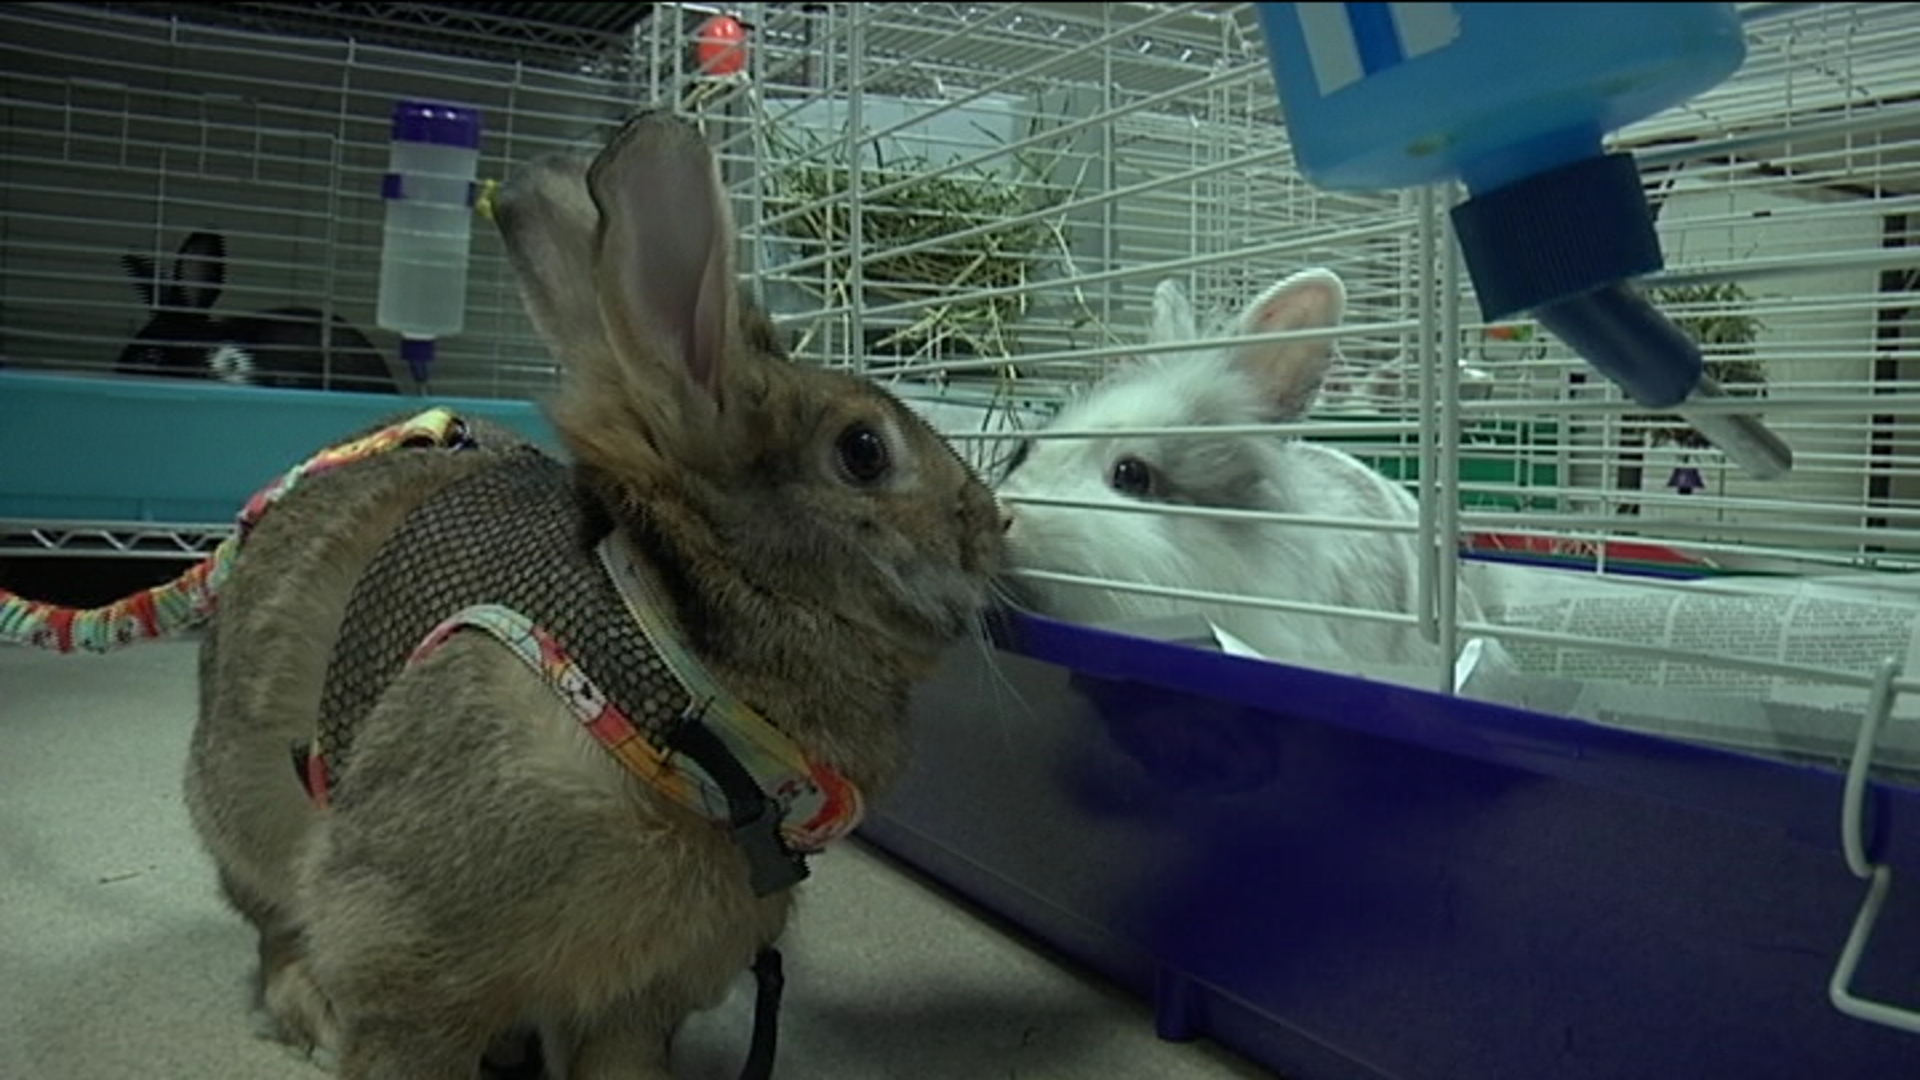 rabbit adoption_1492203753221.jpg